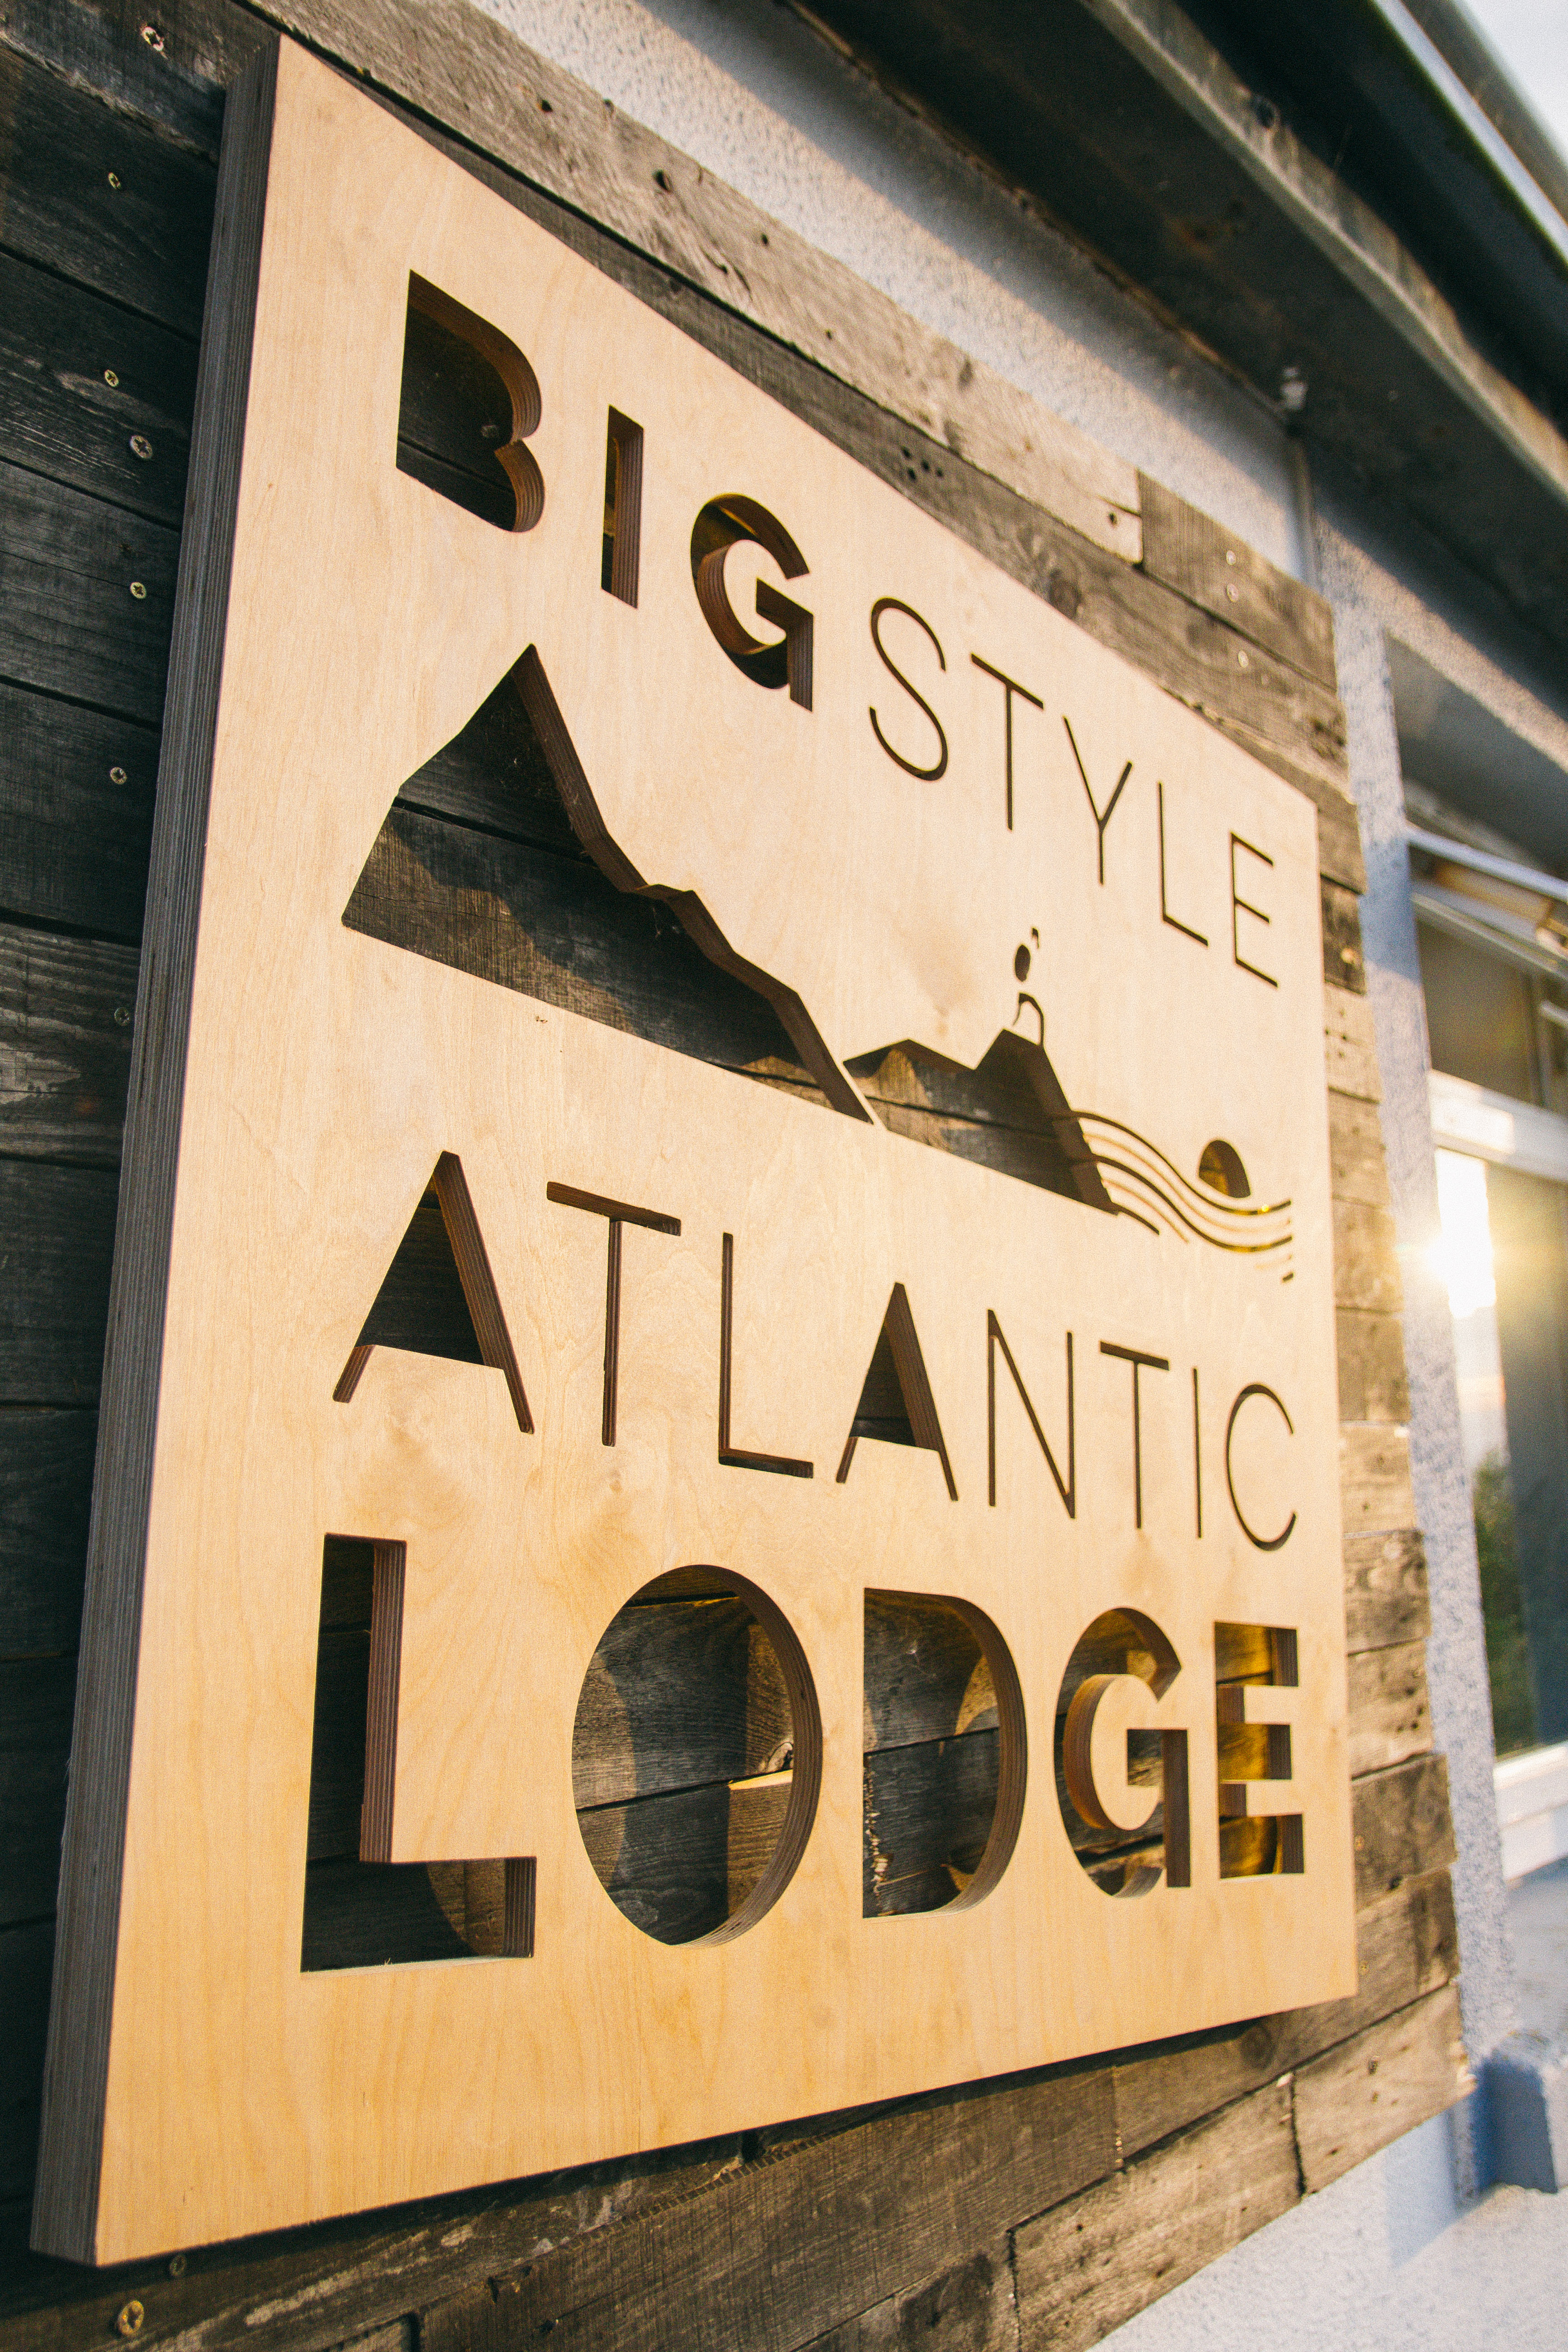 Big Style Atlantic Lodge